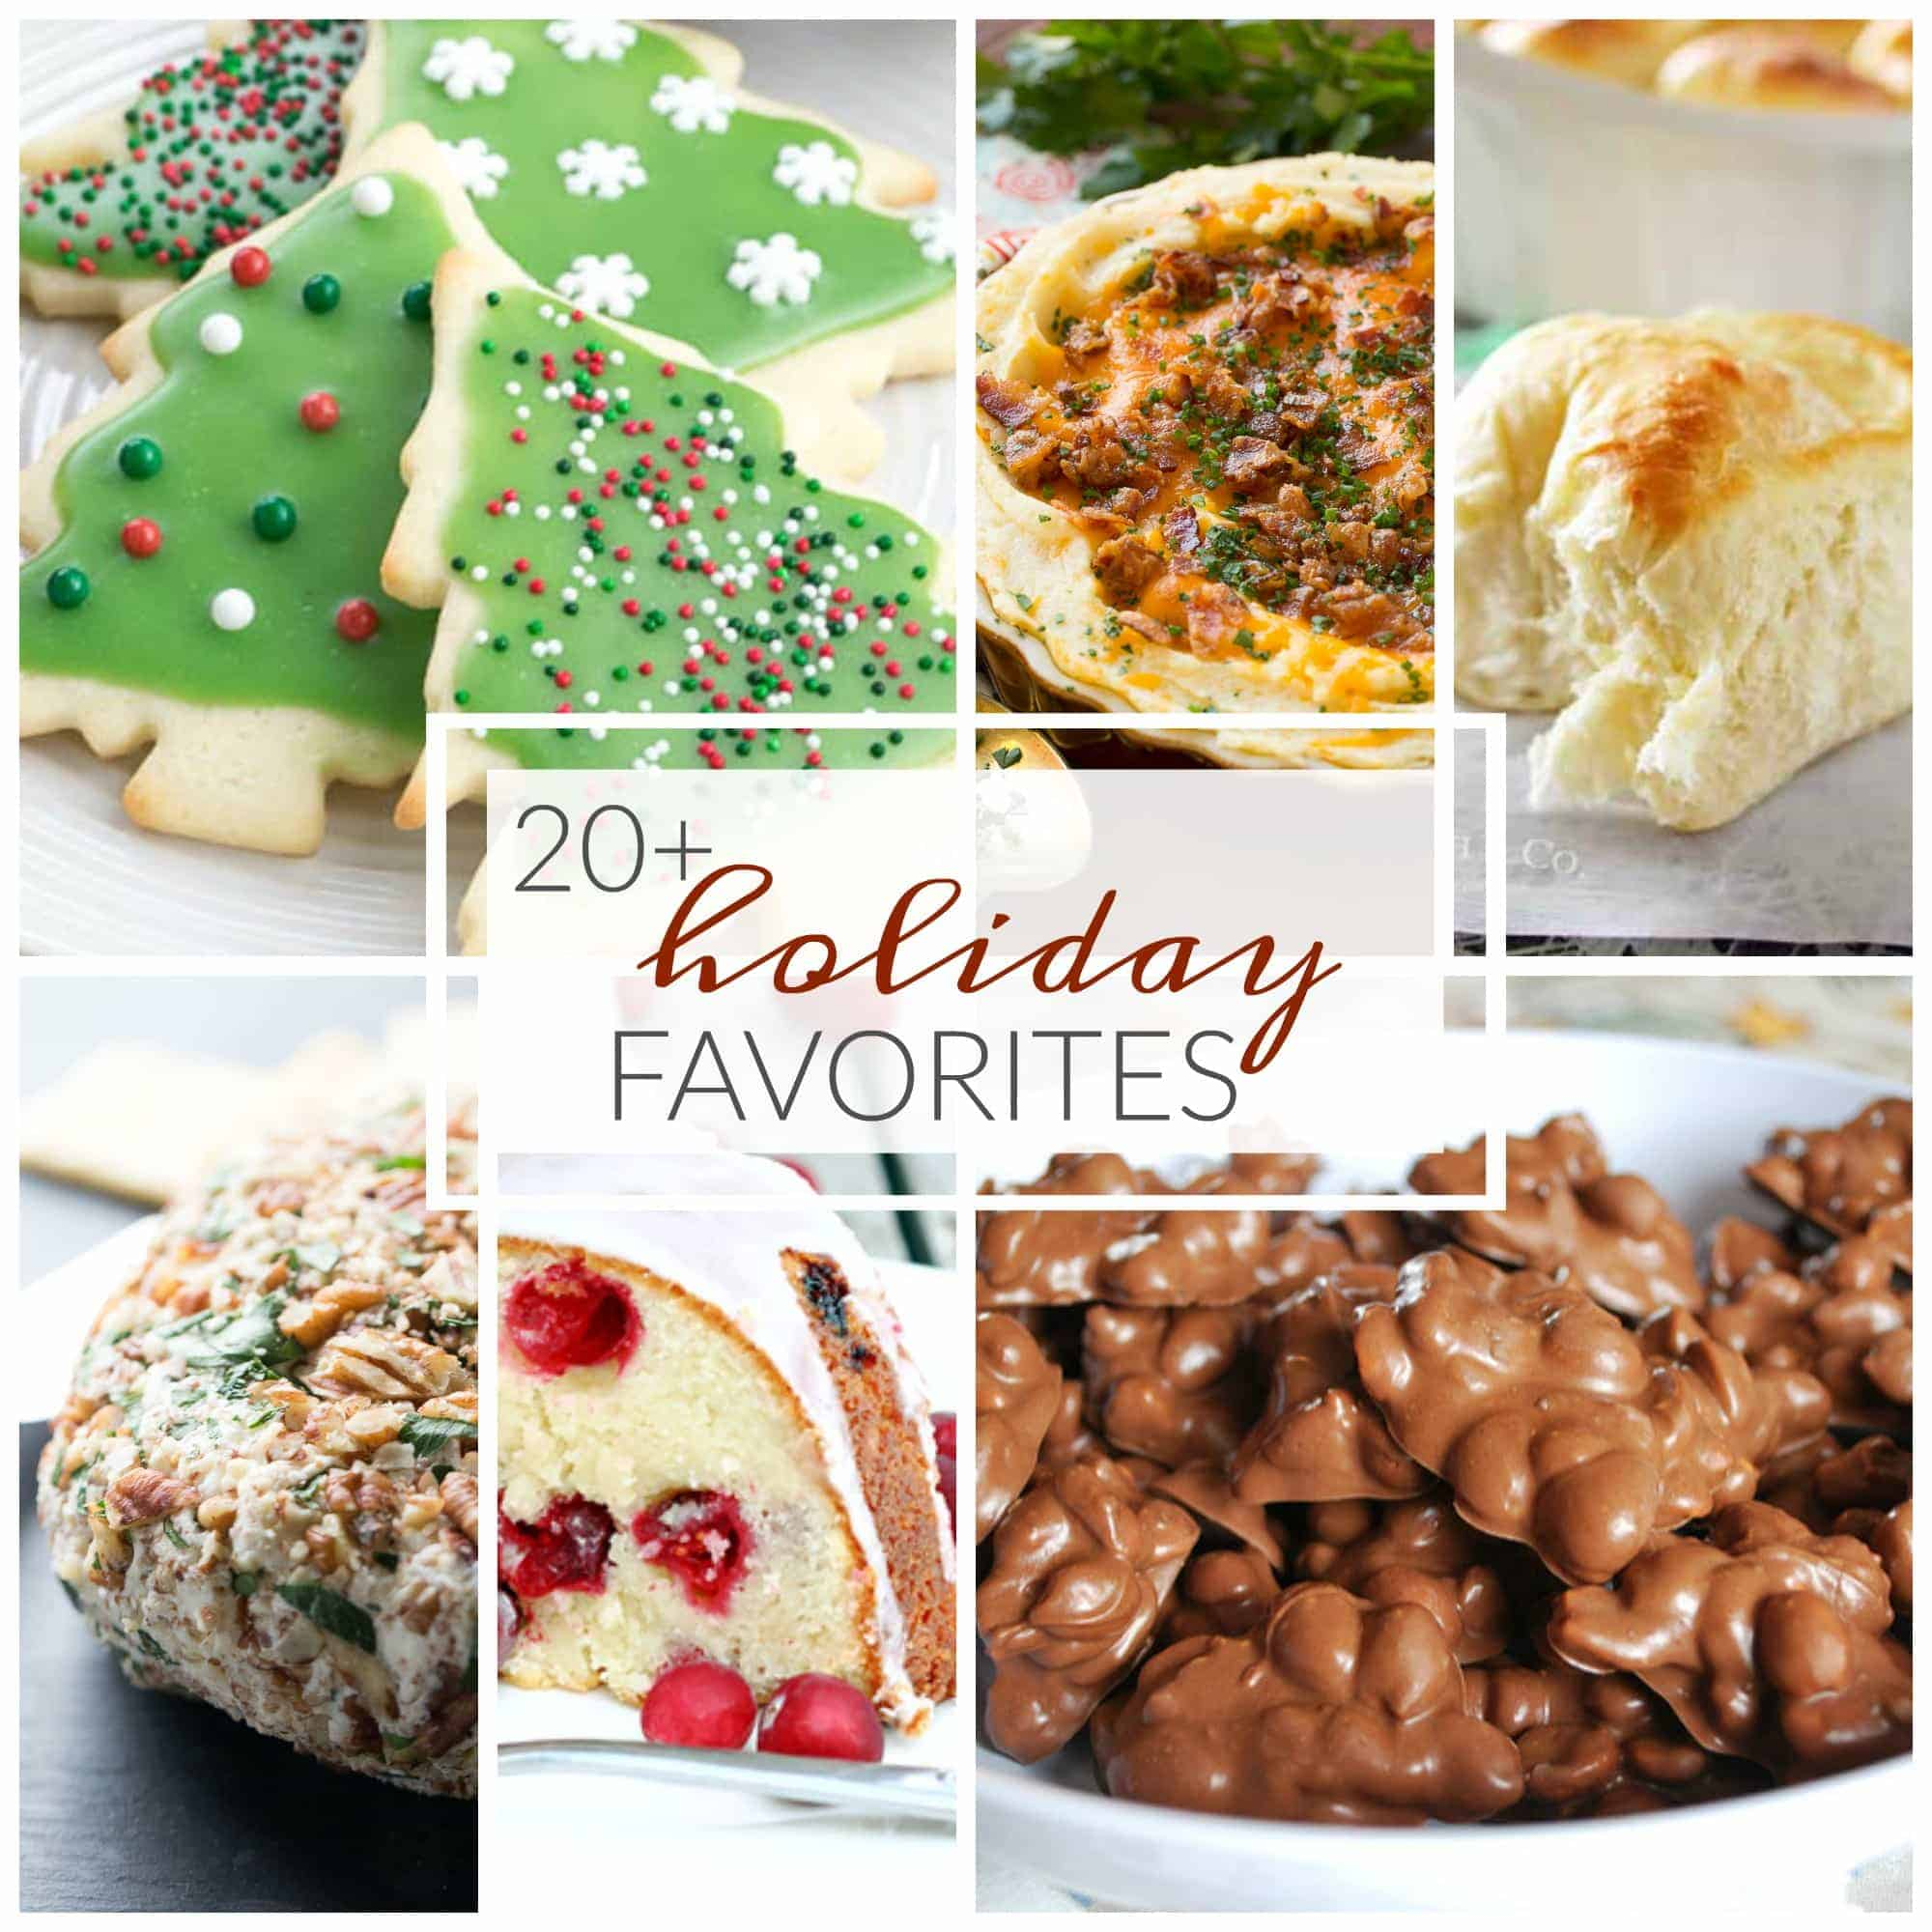 These 20+ Holiday favorites are sure to bring smiles to family and friends. What a great way to spend time together over the holidays and enjoying wonderful food!